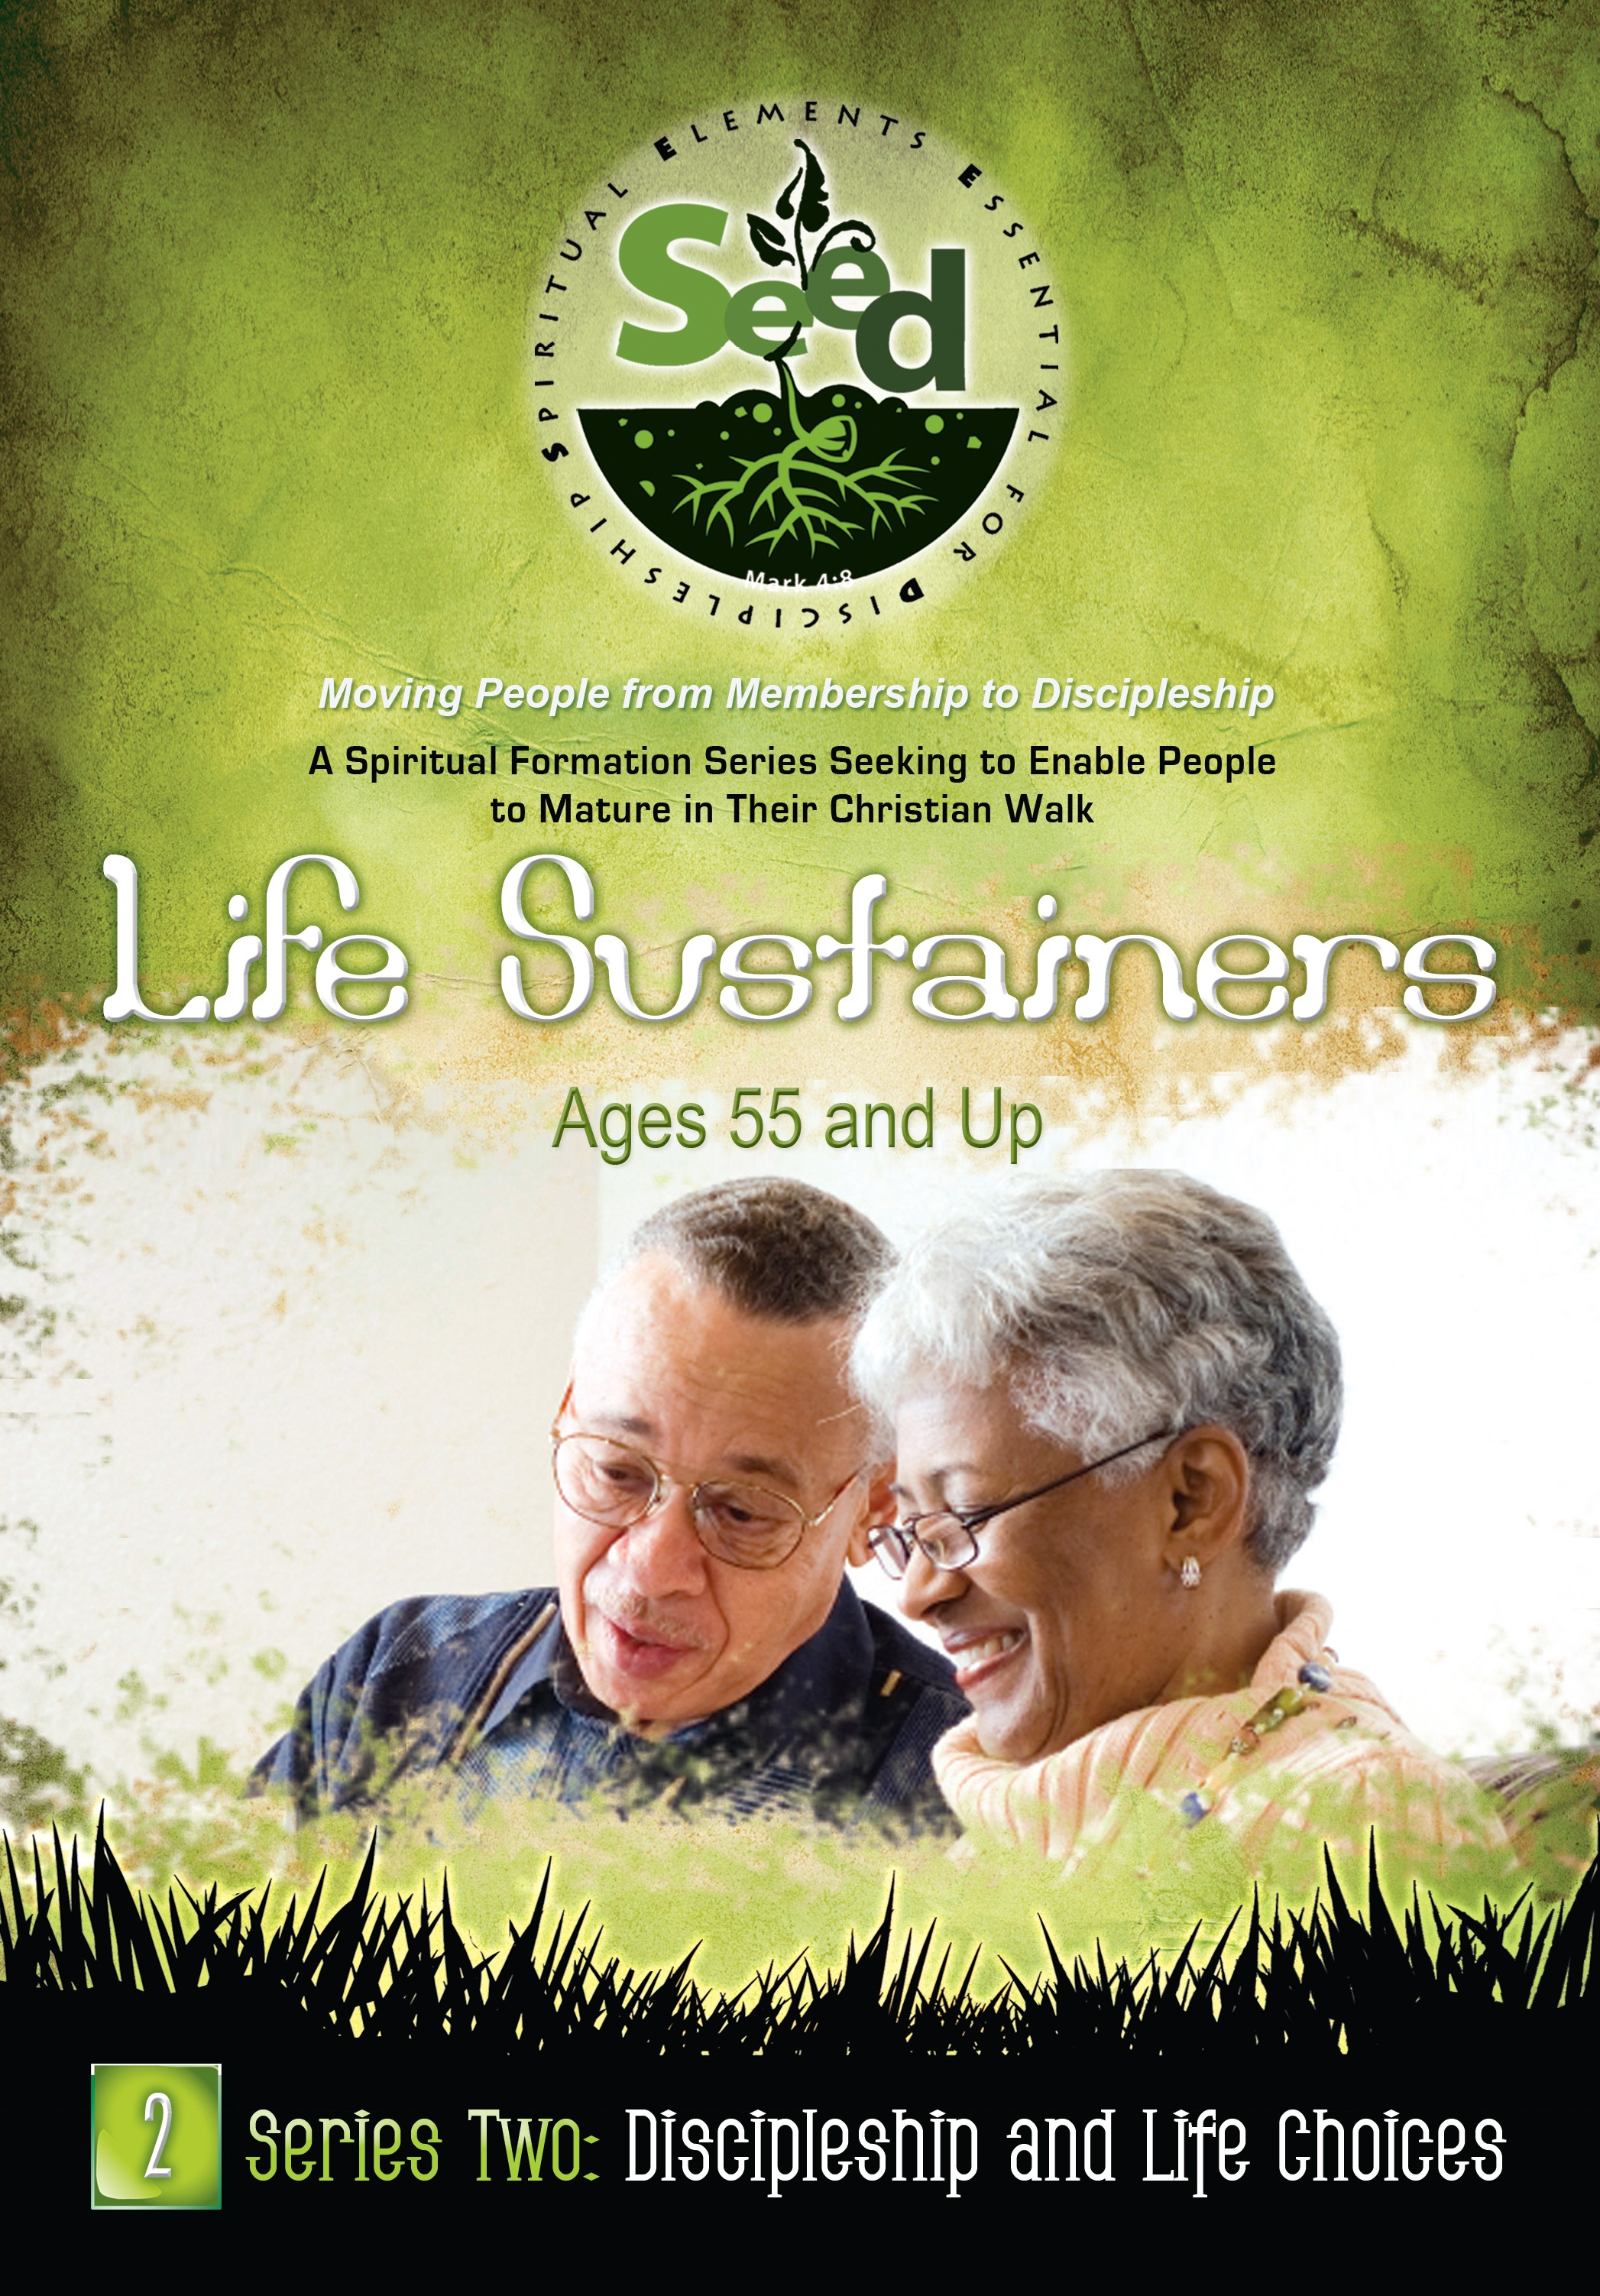 SEED Life Sustainers (Ages 55 and Up): Series 2: Discipleship and Life Choices